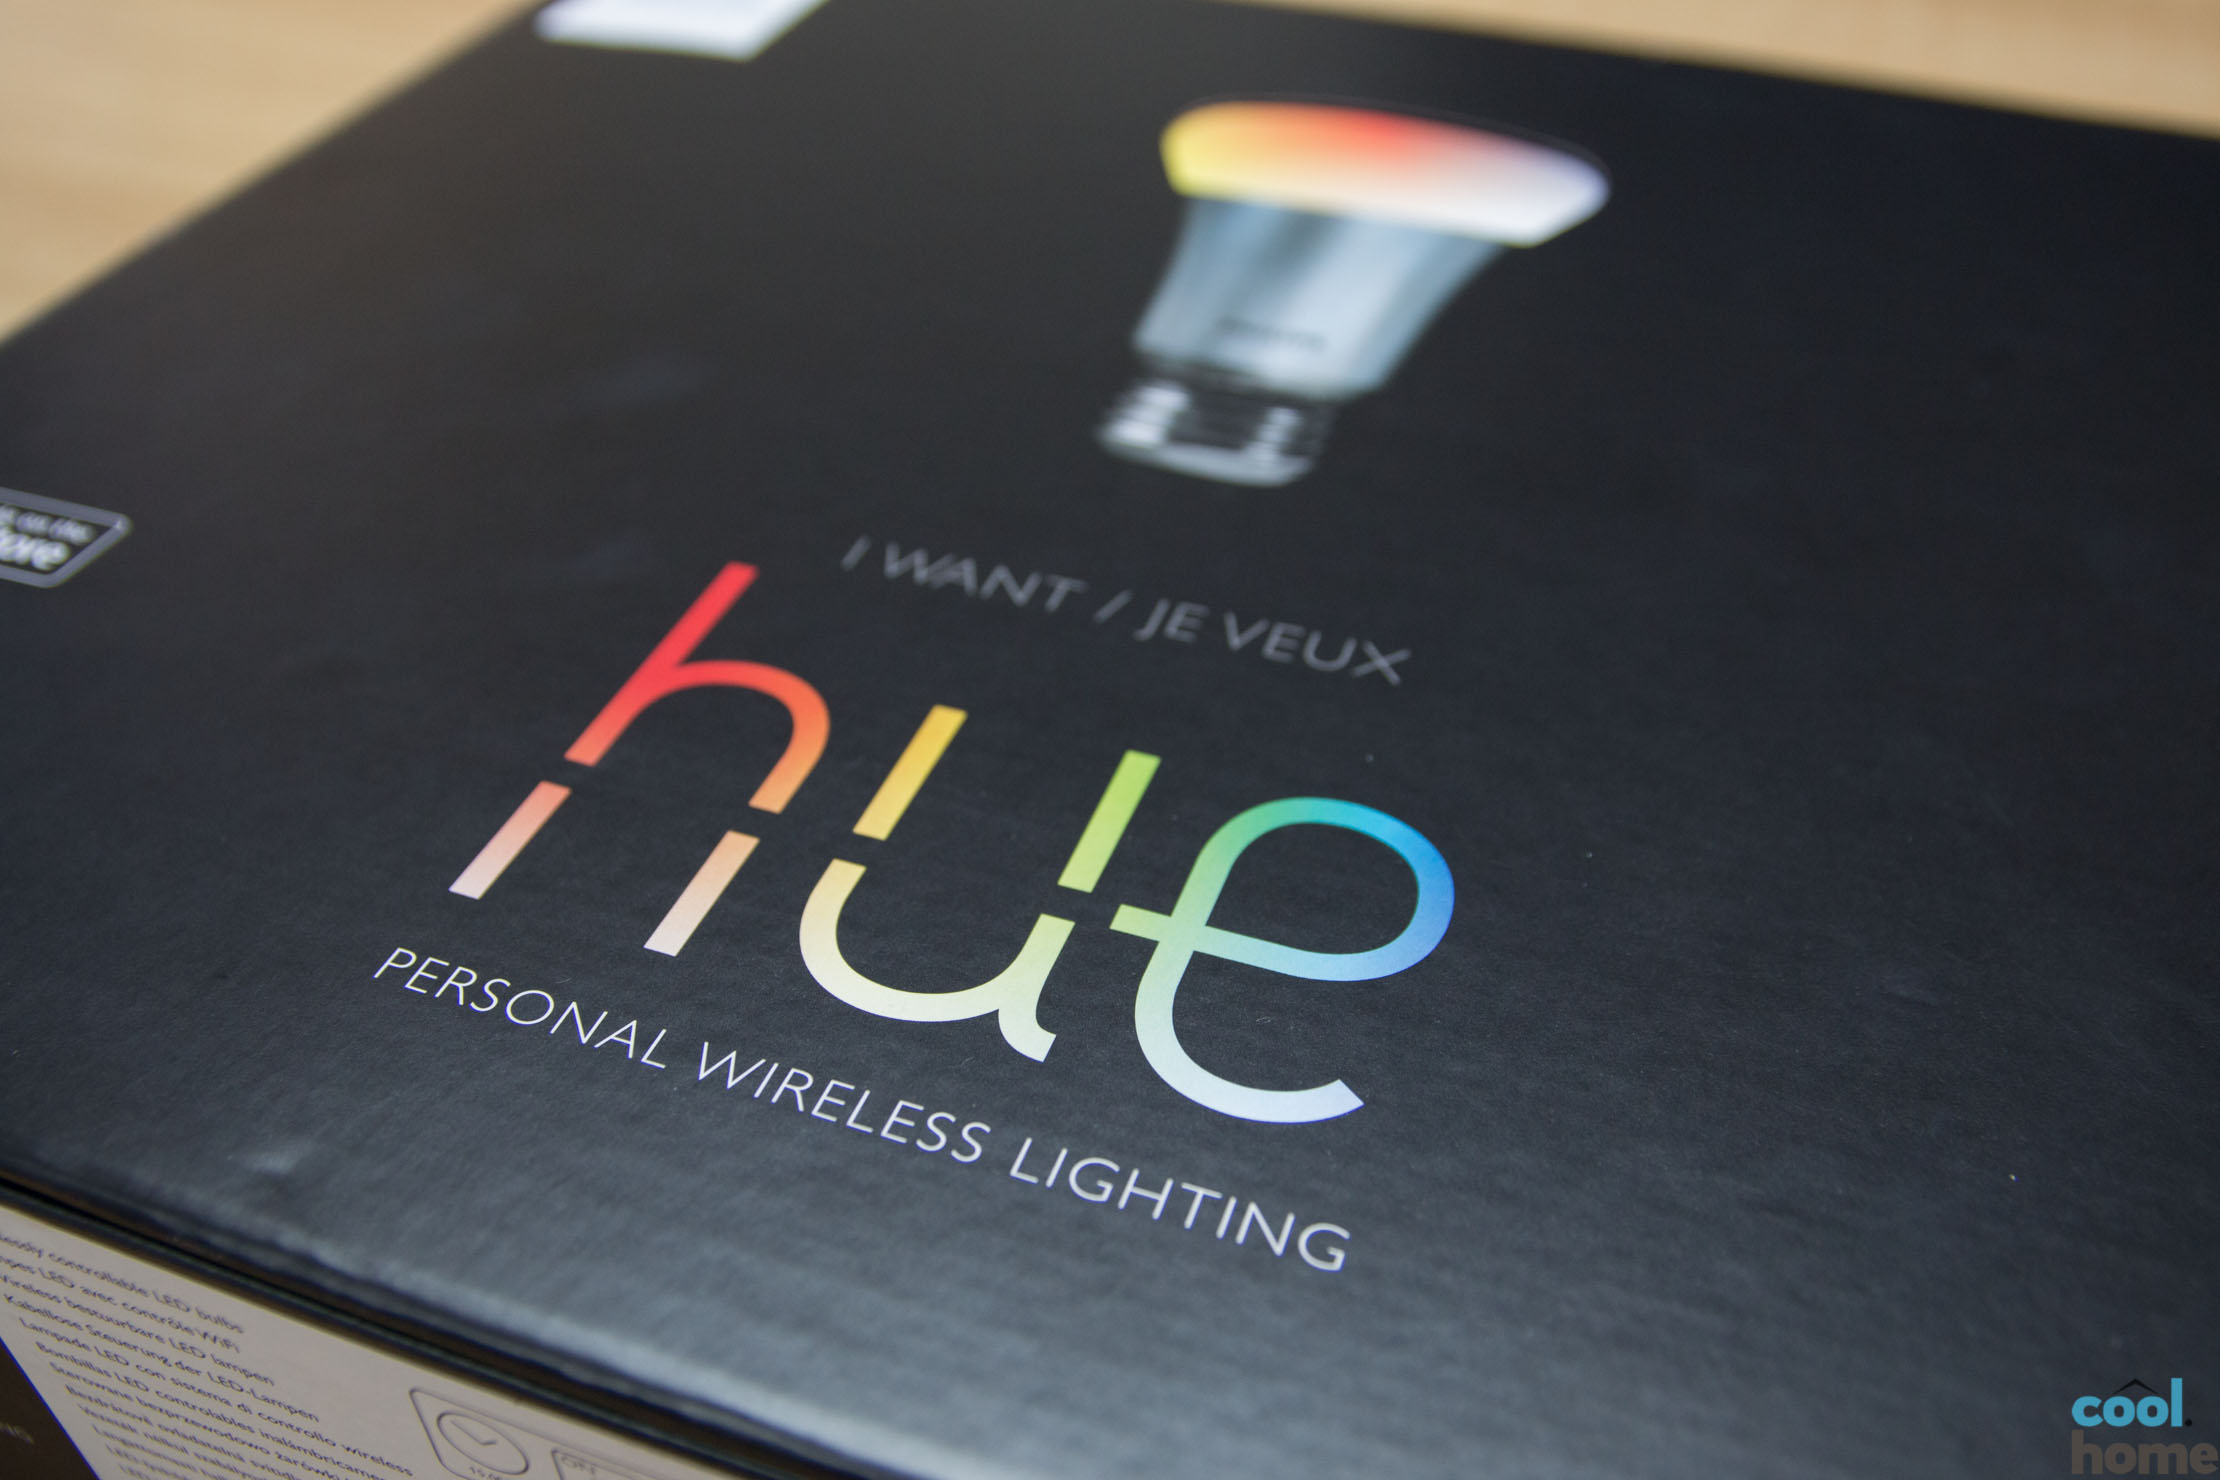 philips hue review (7)